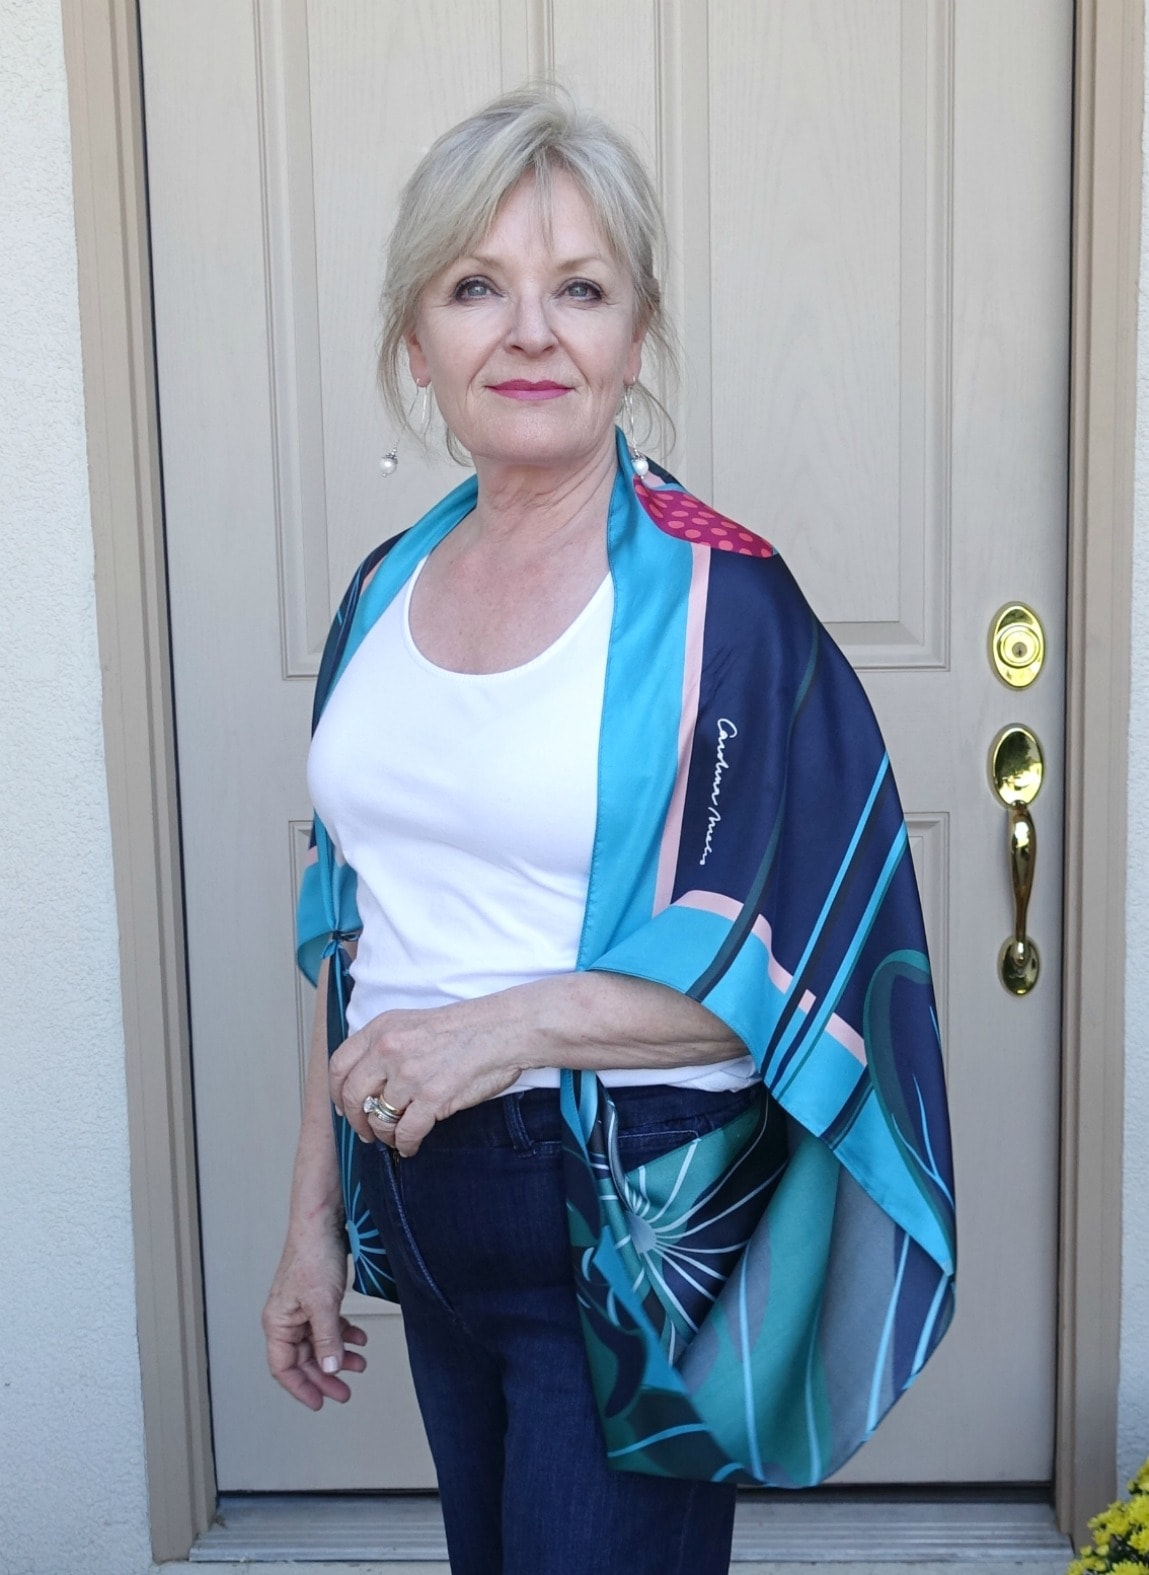 Jennifer Connolly on A Well Styled Life wearing silk scarf as a cocoon wrap